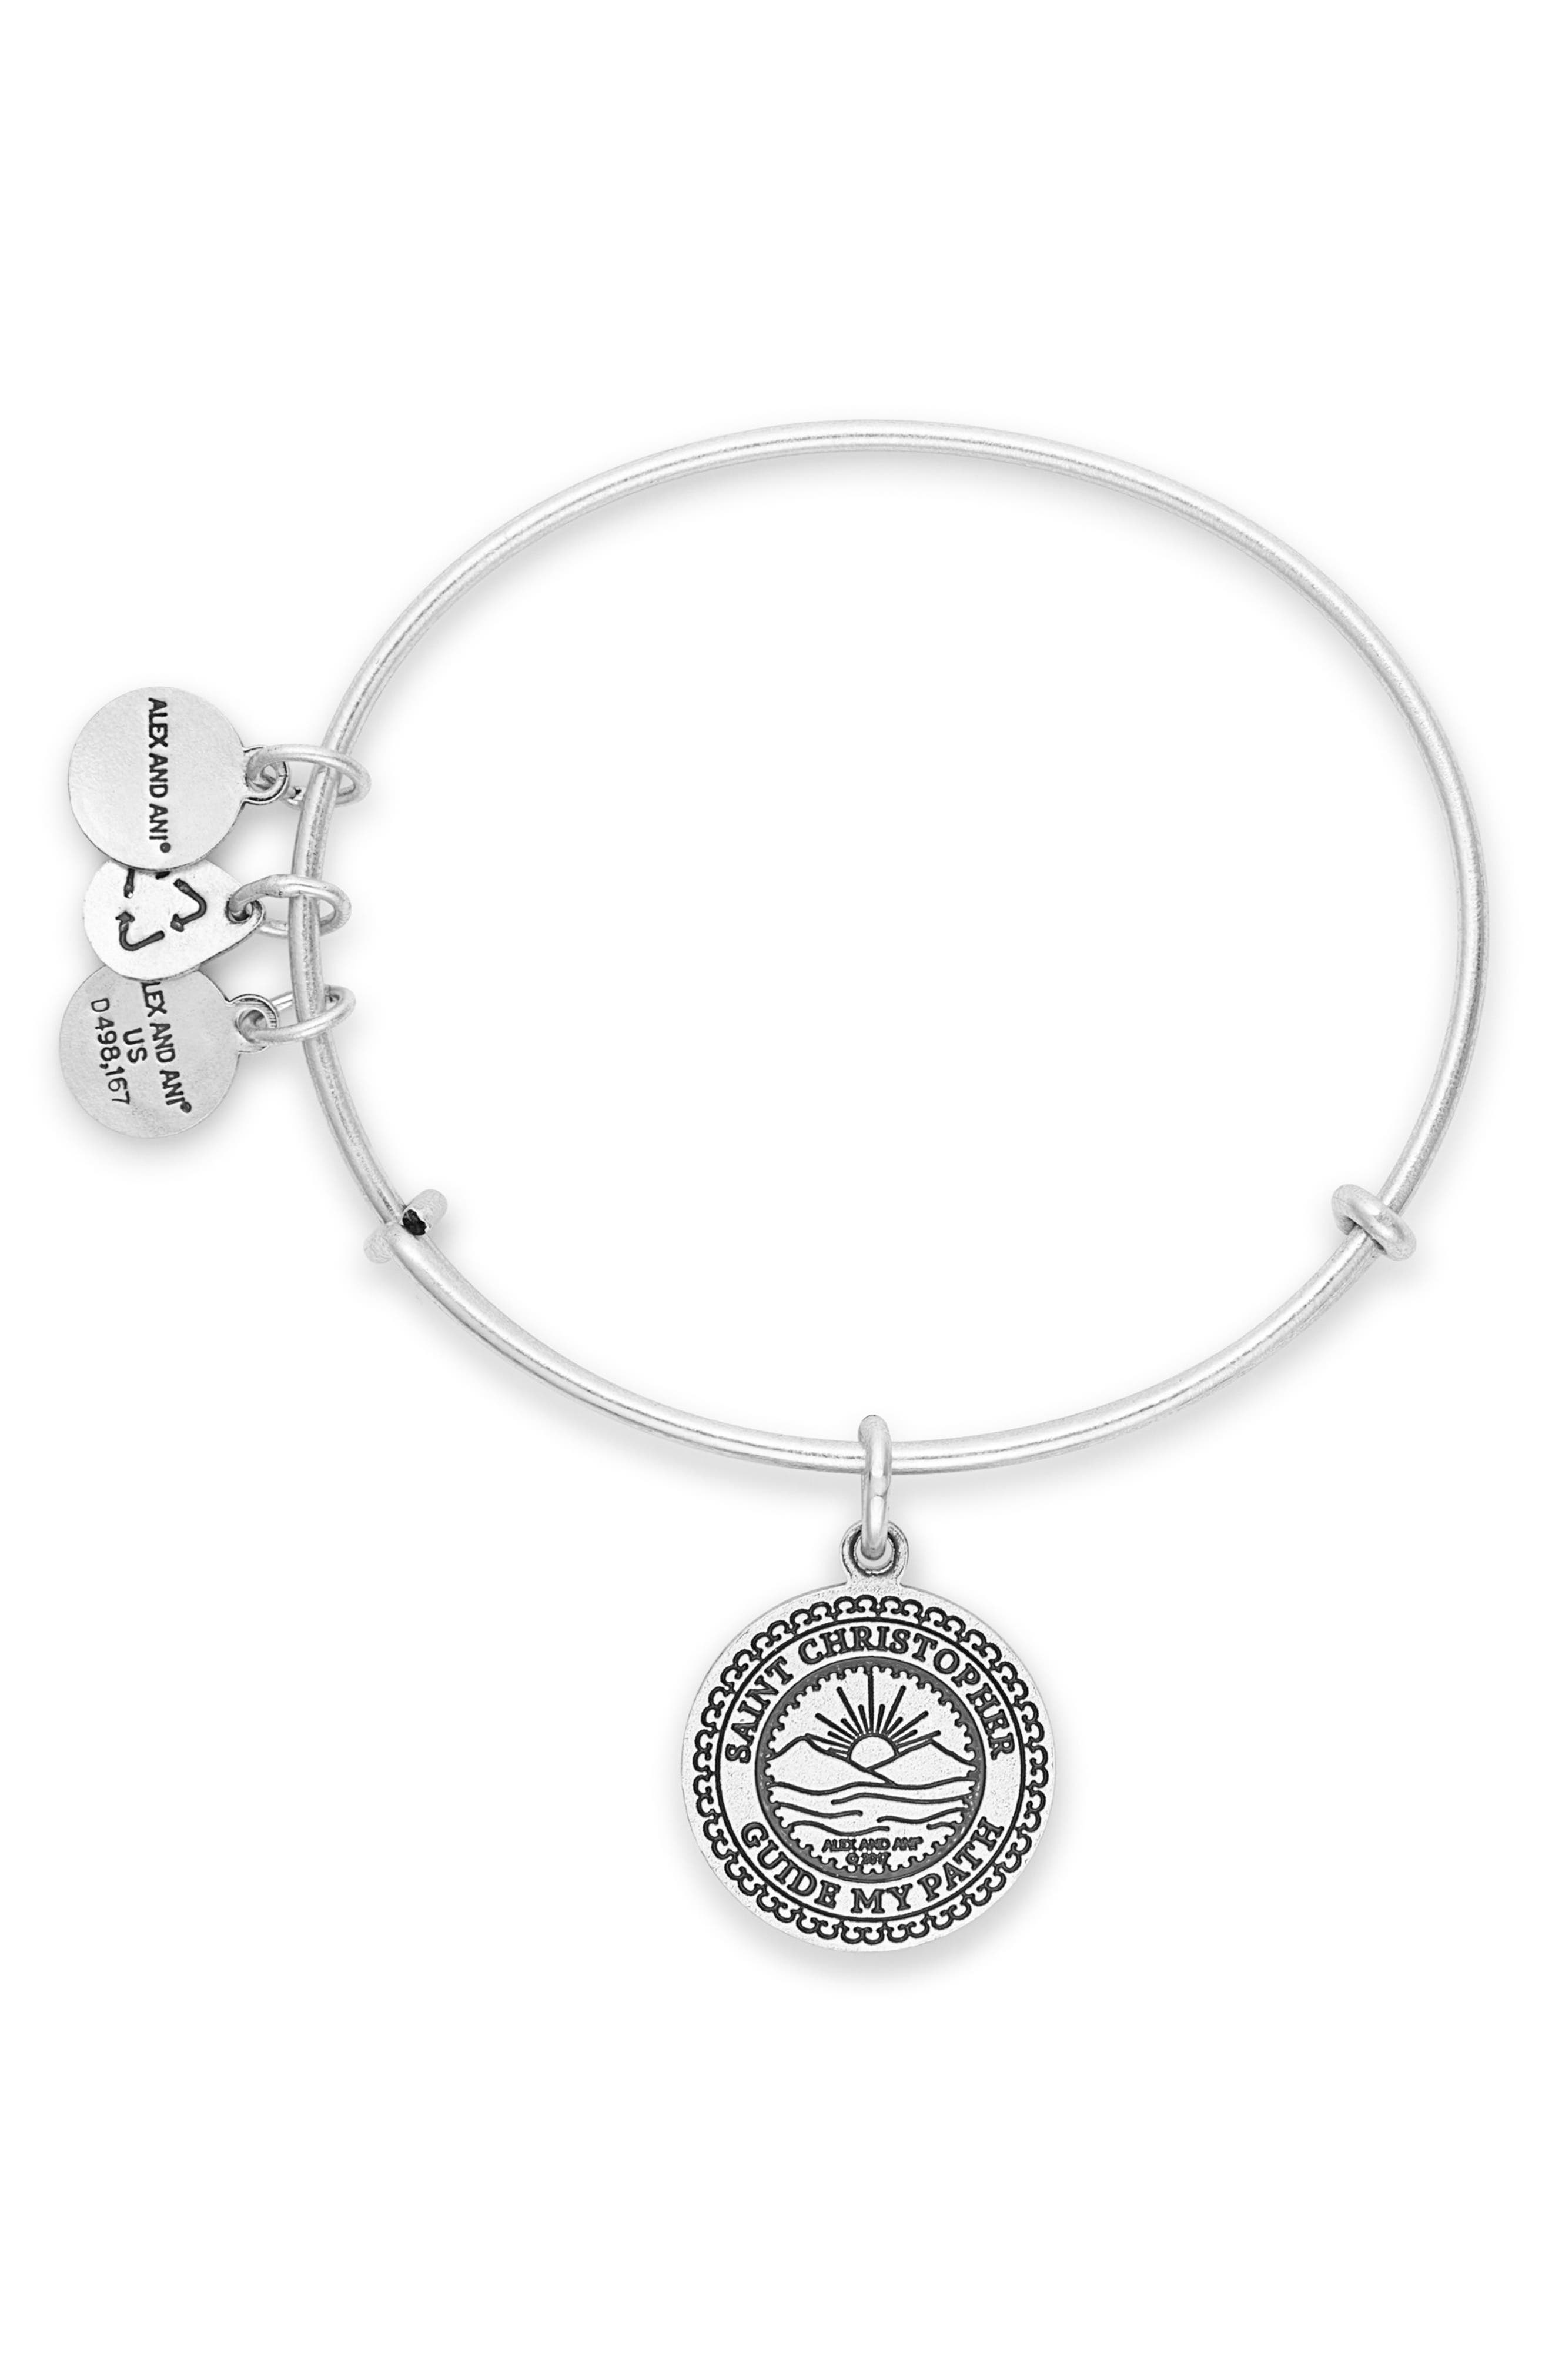 St. Christopher Adjustable Wire Bangle,                             Alternate thumbnail 2, color,                             040